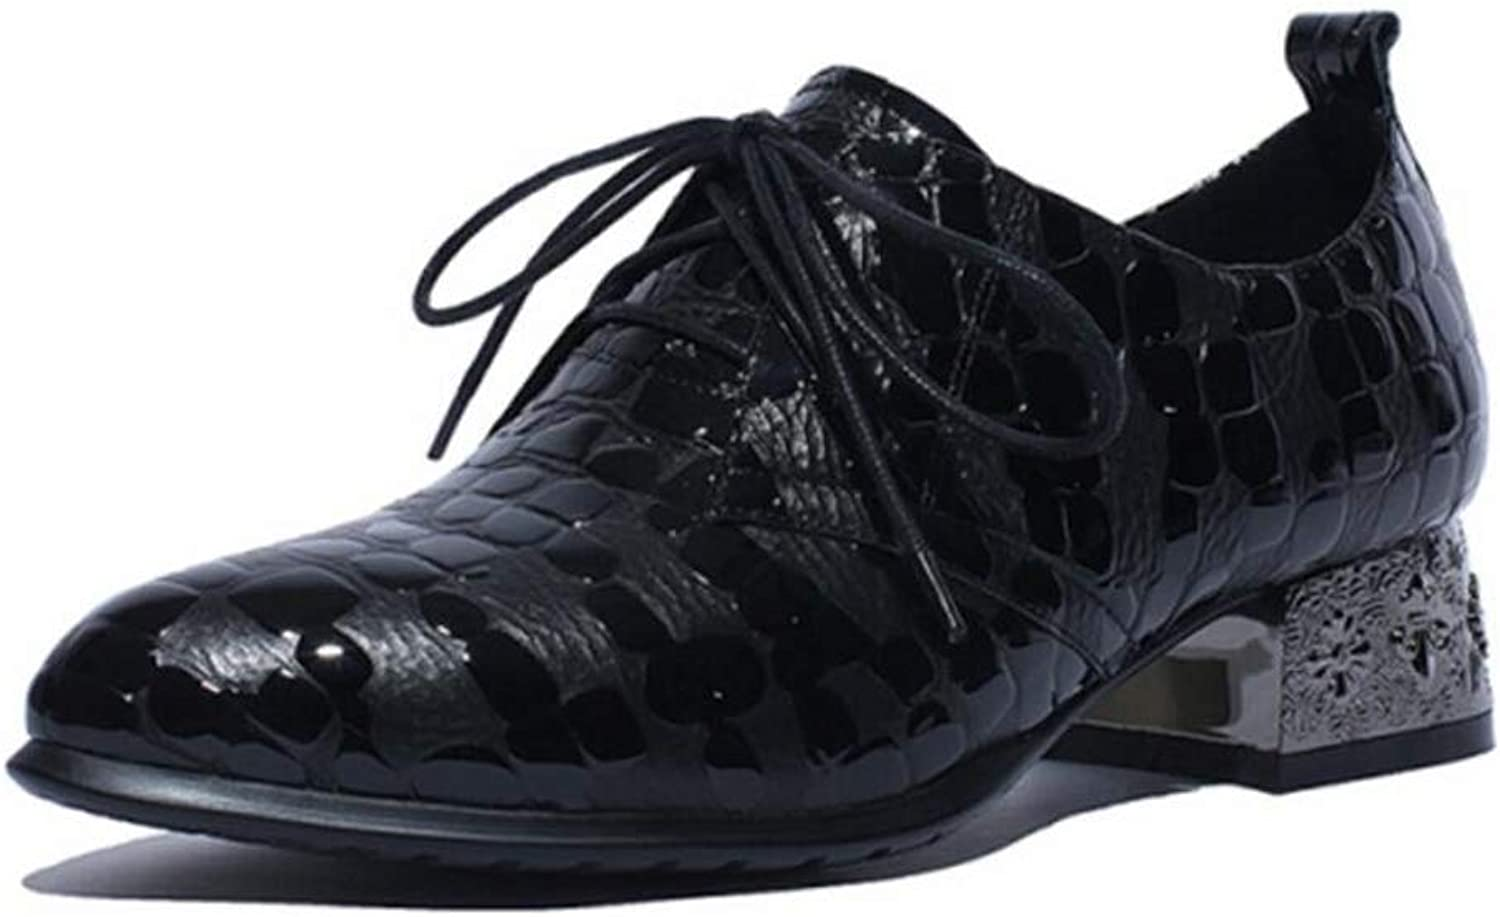 Women's shoes Brogue Stone Pattern Pointed Toe Lace-up shoes Autumn